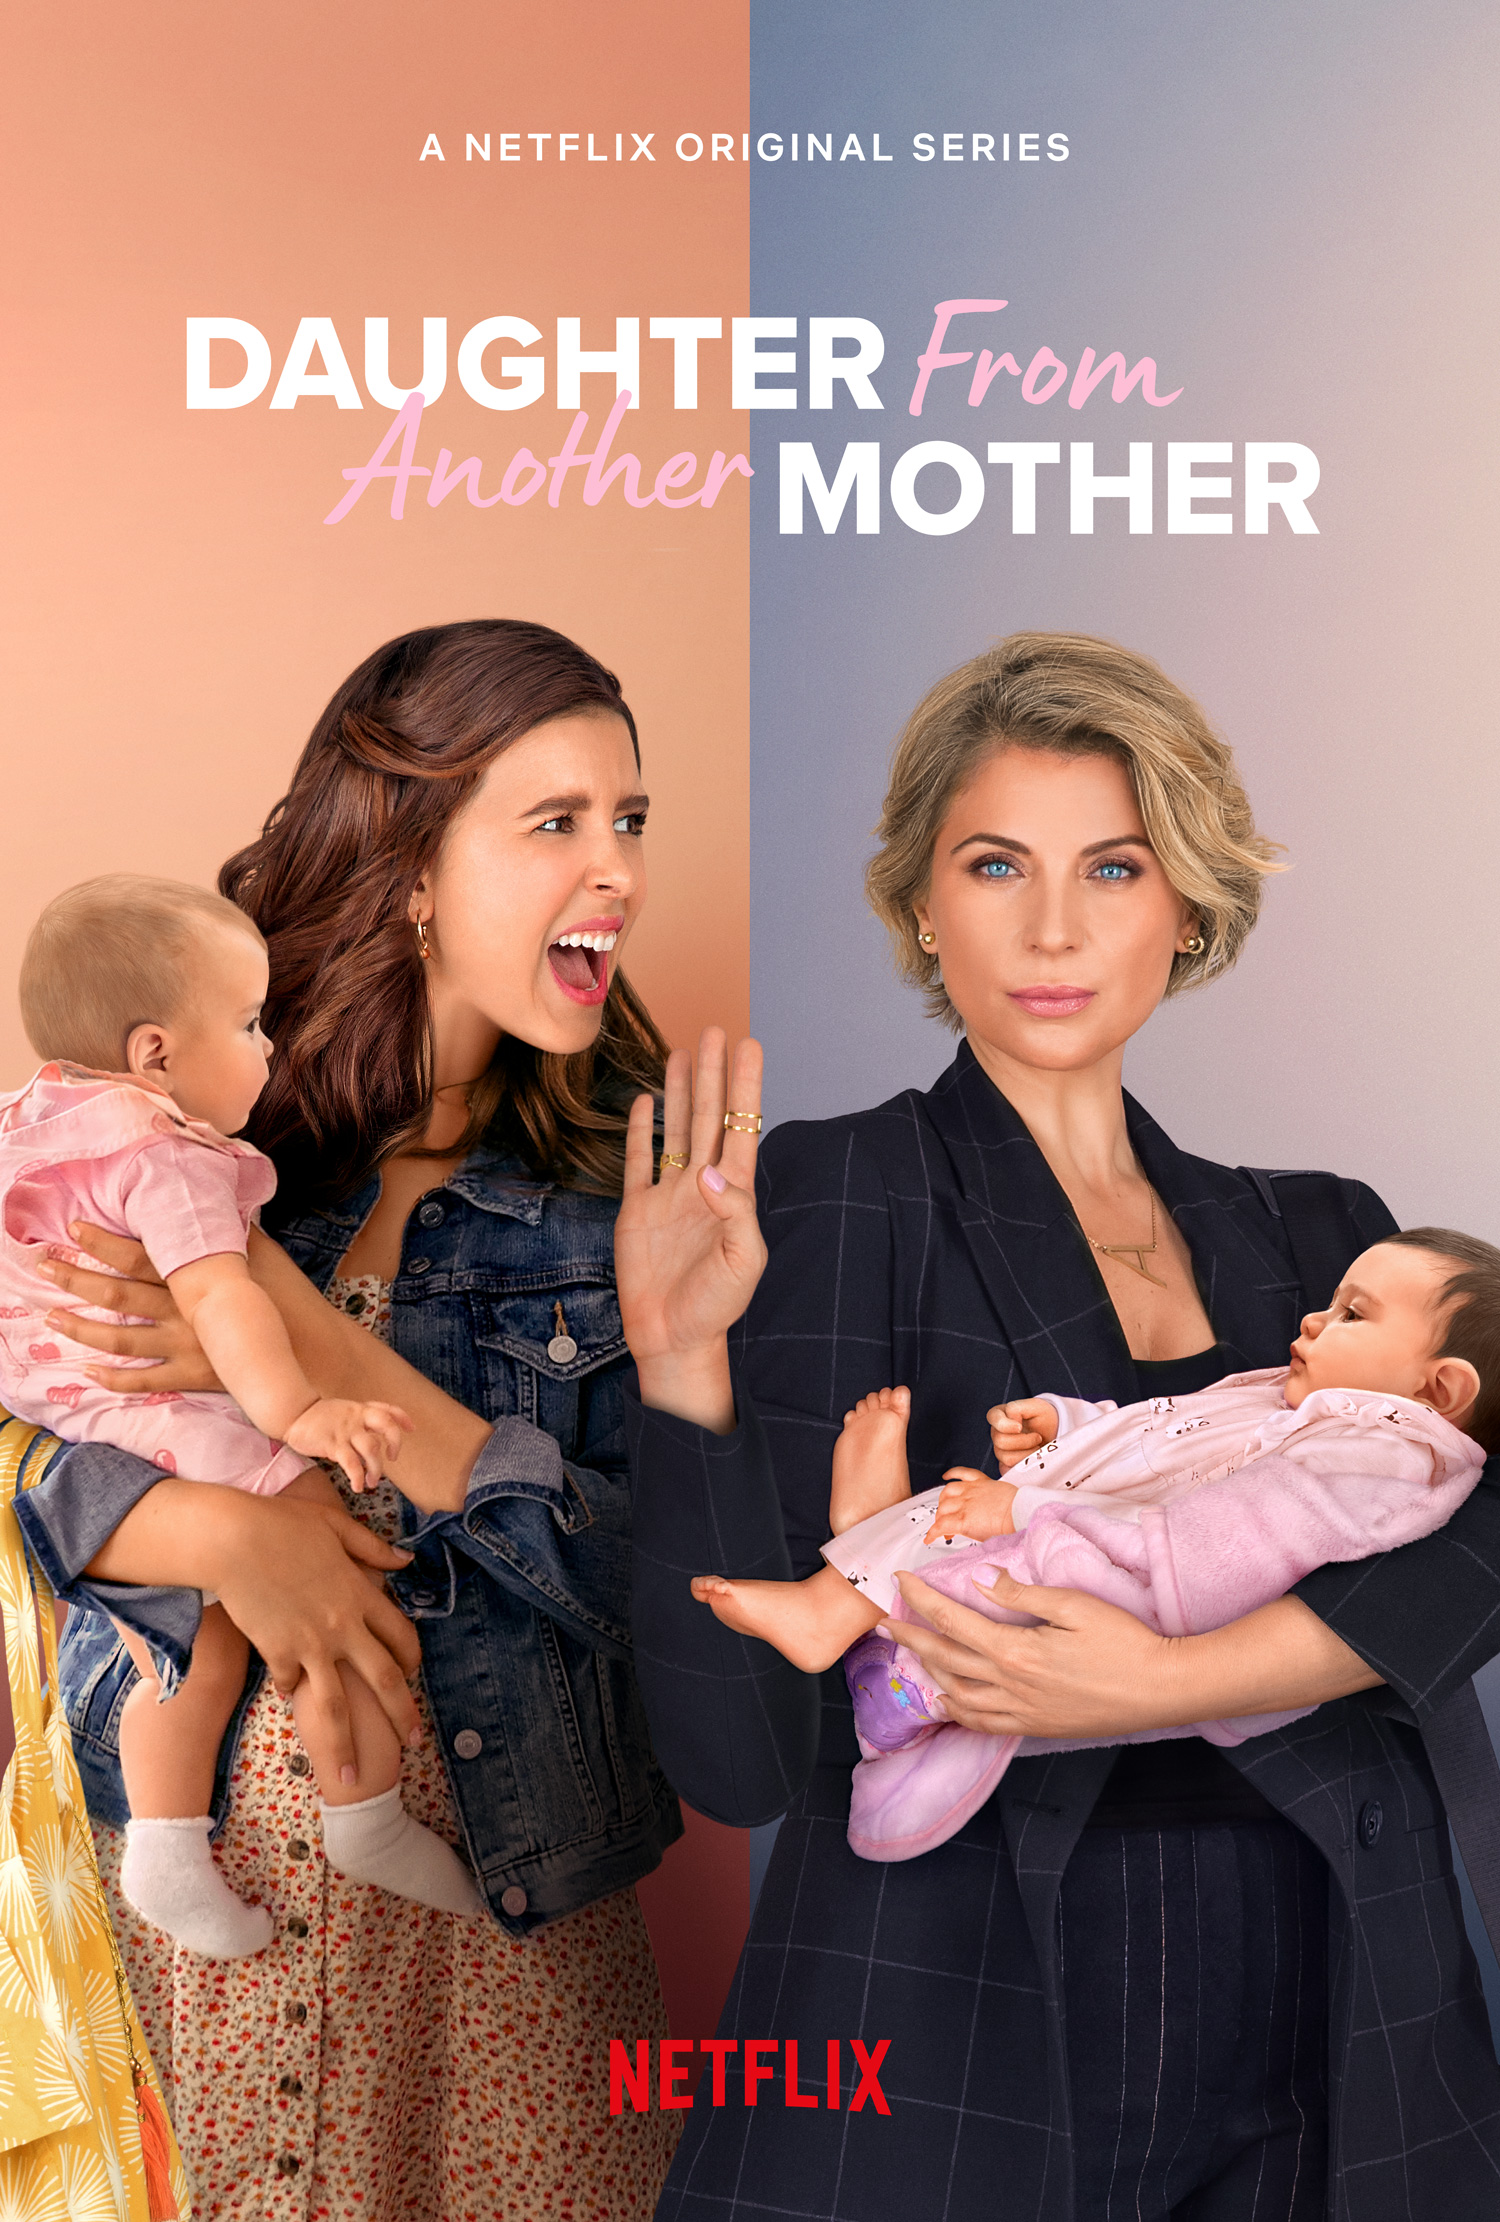 'Daughter From Another Mother': Connecting 23 Million Households Through Dramedy